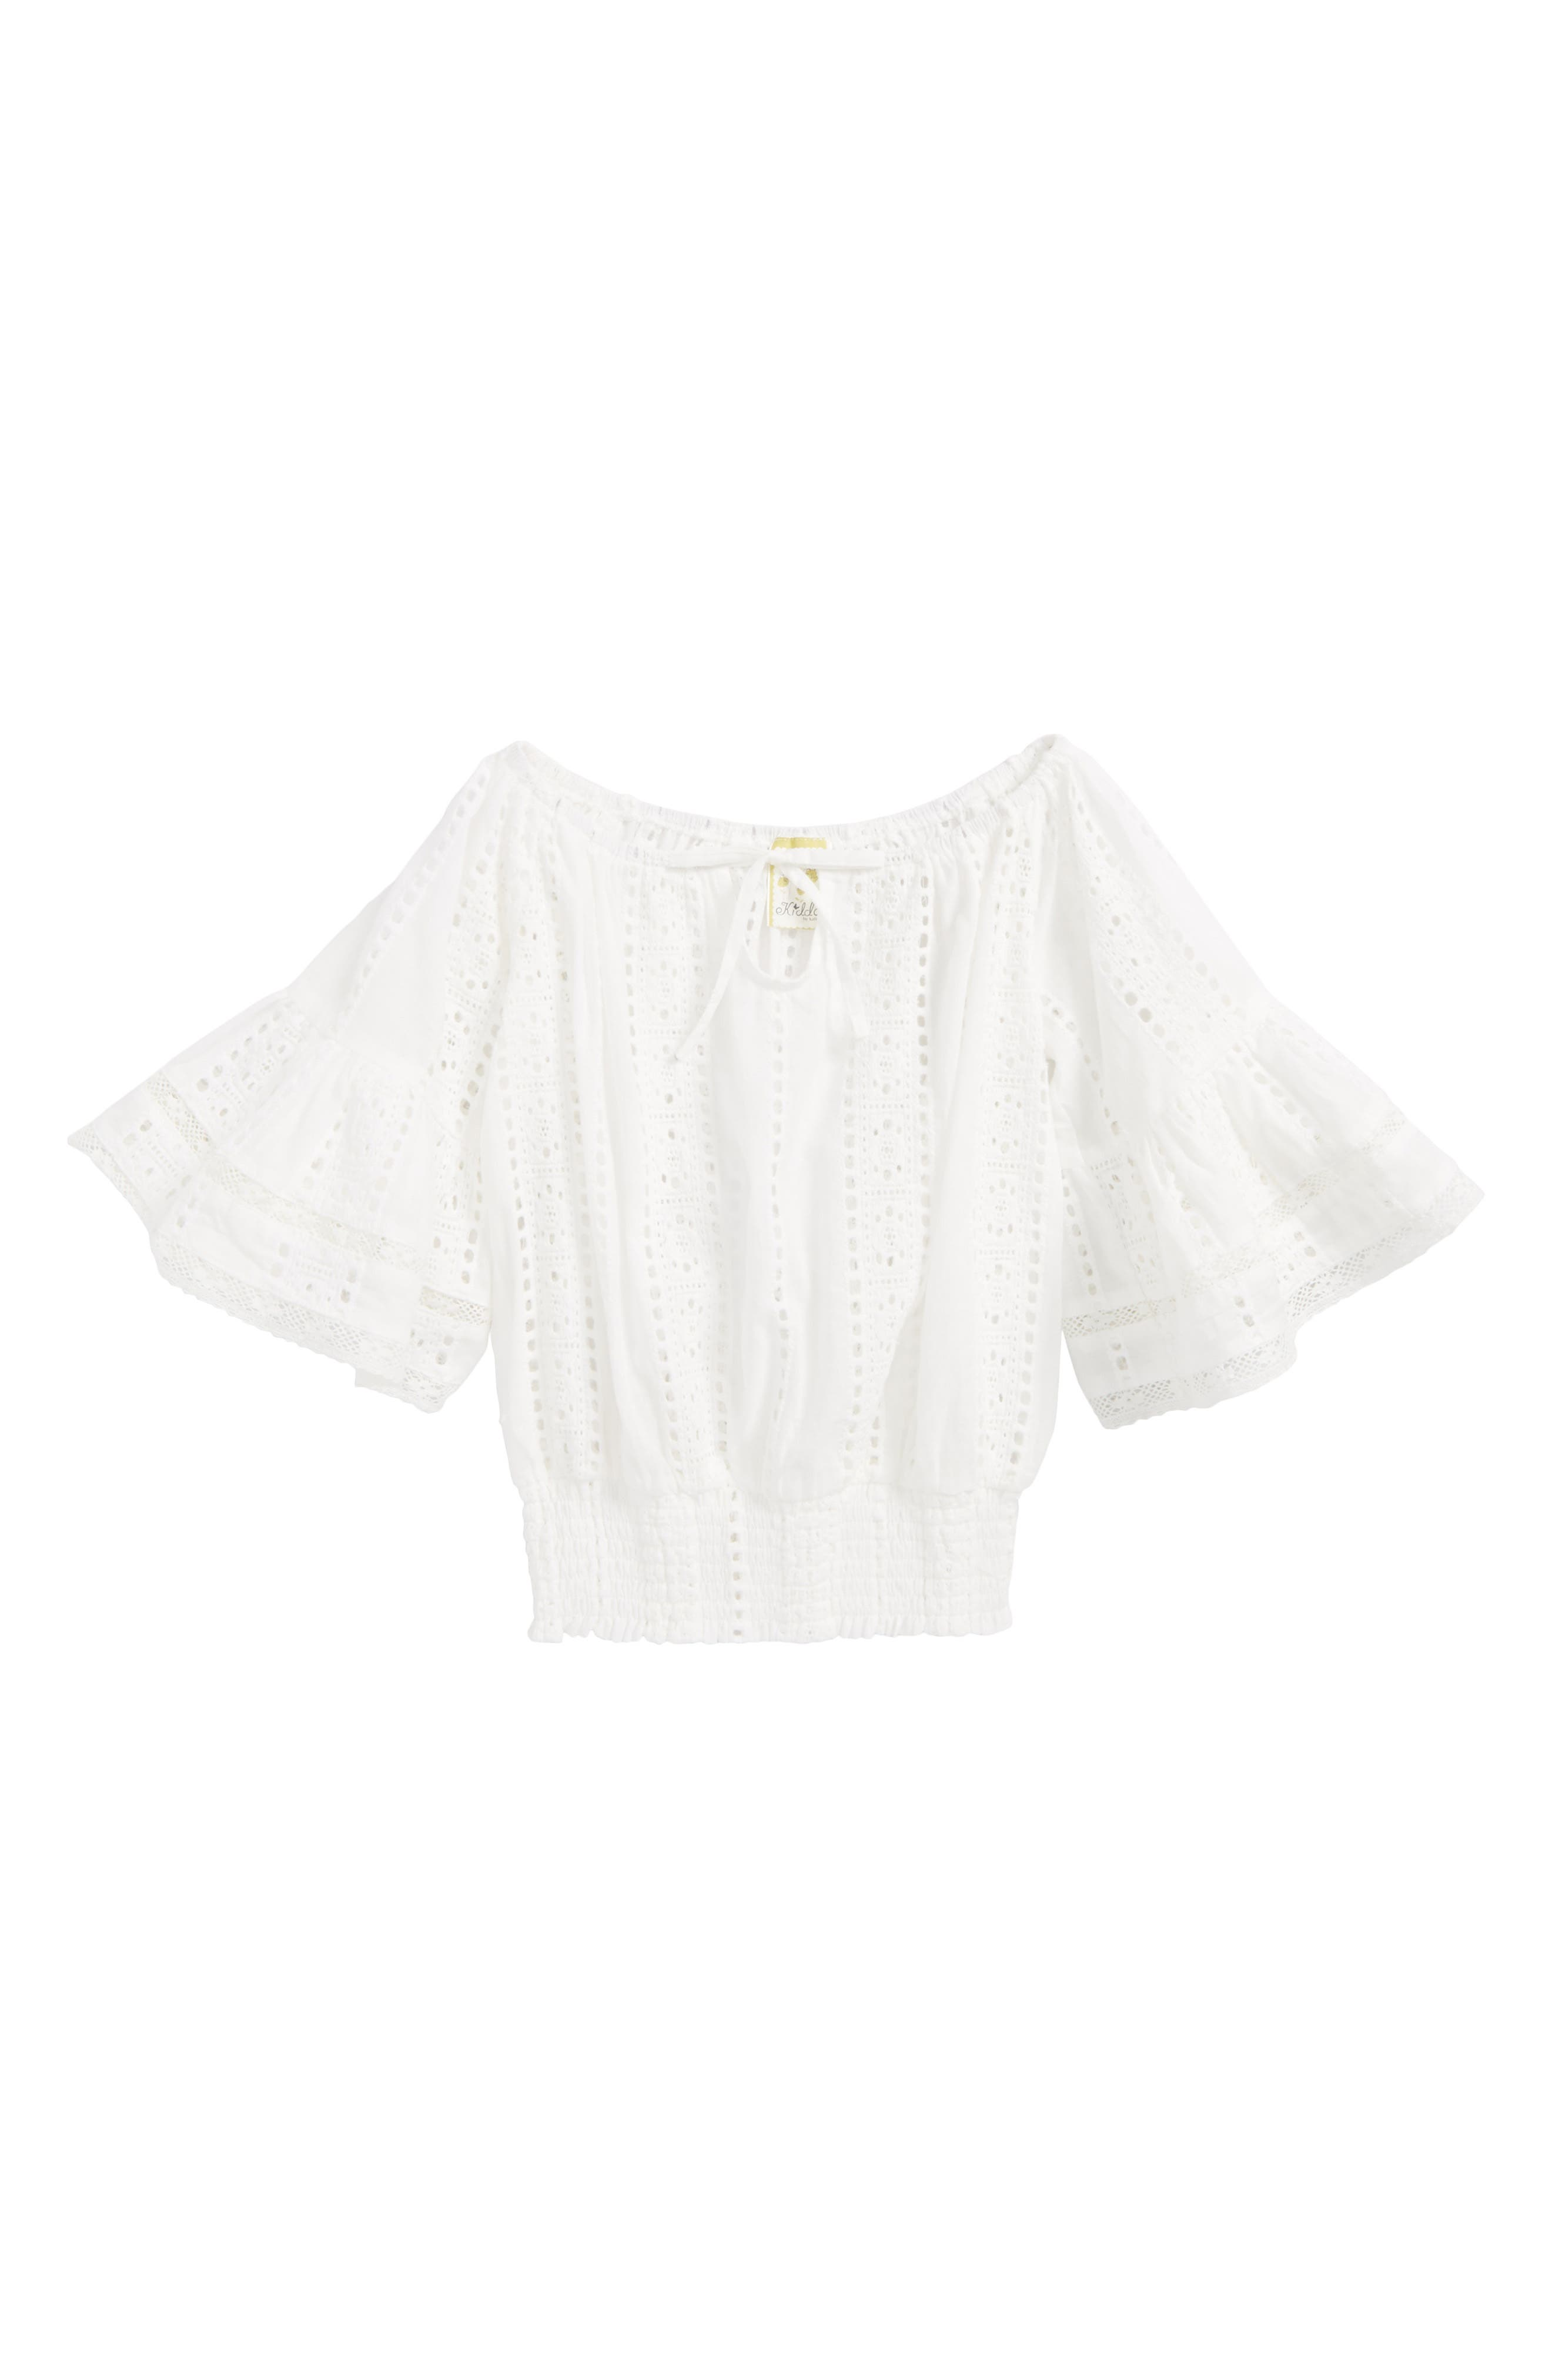 Alternate Image 1 Selected - Kiddo Broderie Anglaise Bell Sleeve Top (Big Girls)